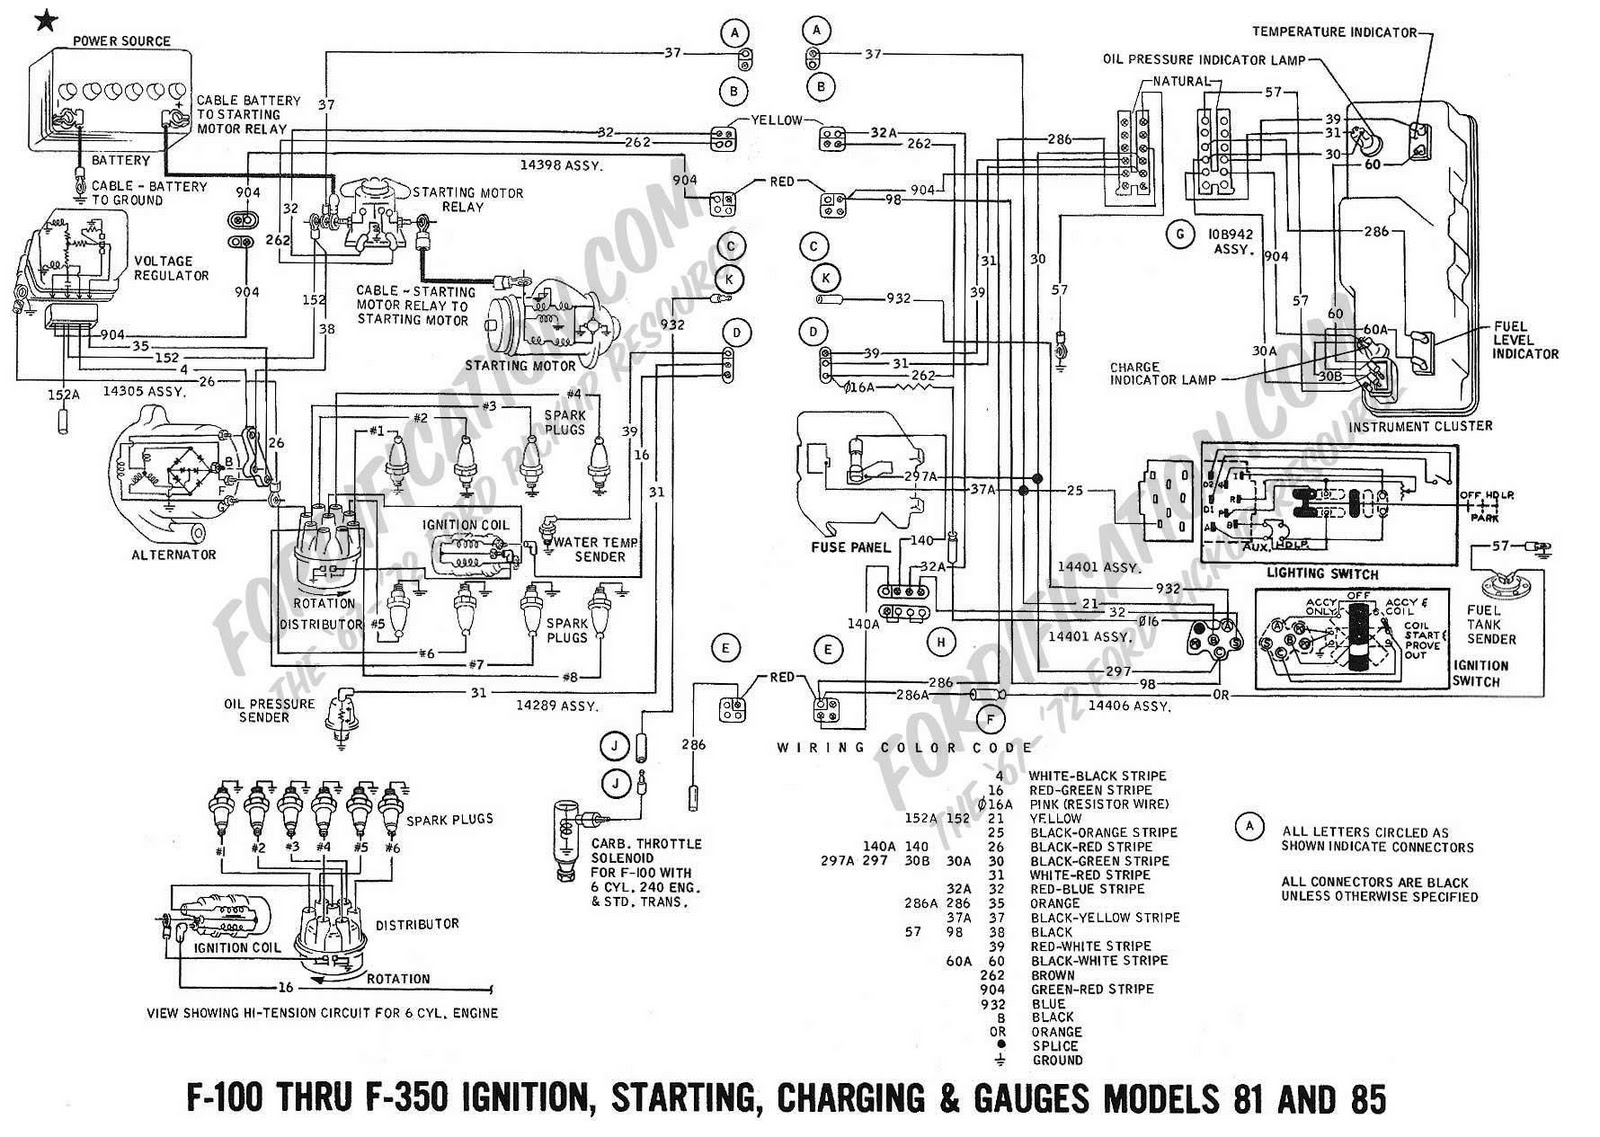 medium resolution of 1970 ford truck turn signal wiring diagram wiring schematic rh 3 yehonalatapes de 1968 ford f100